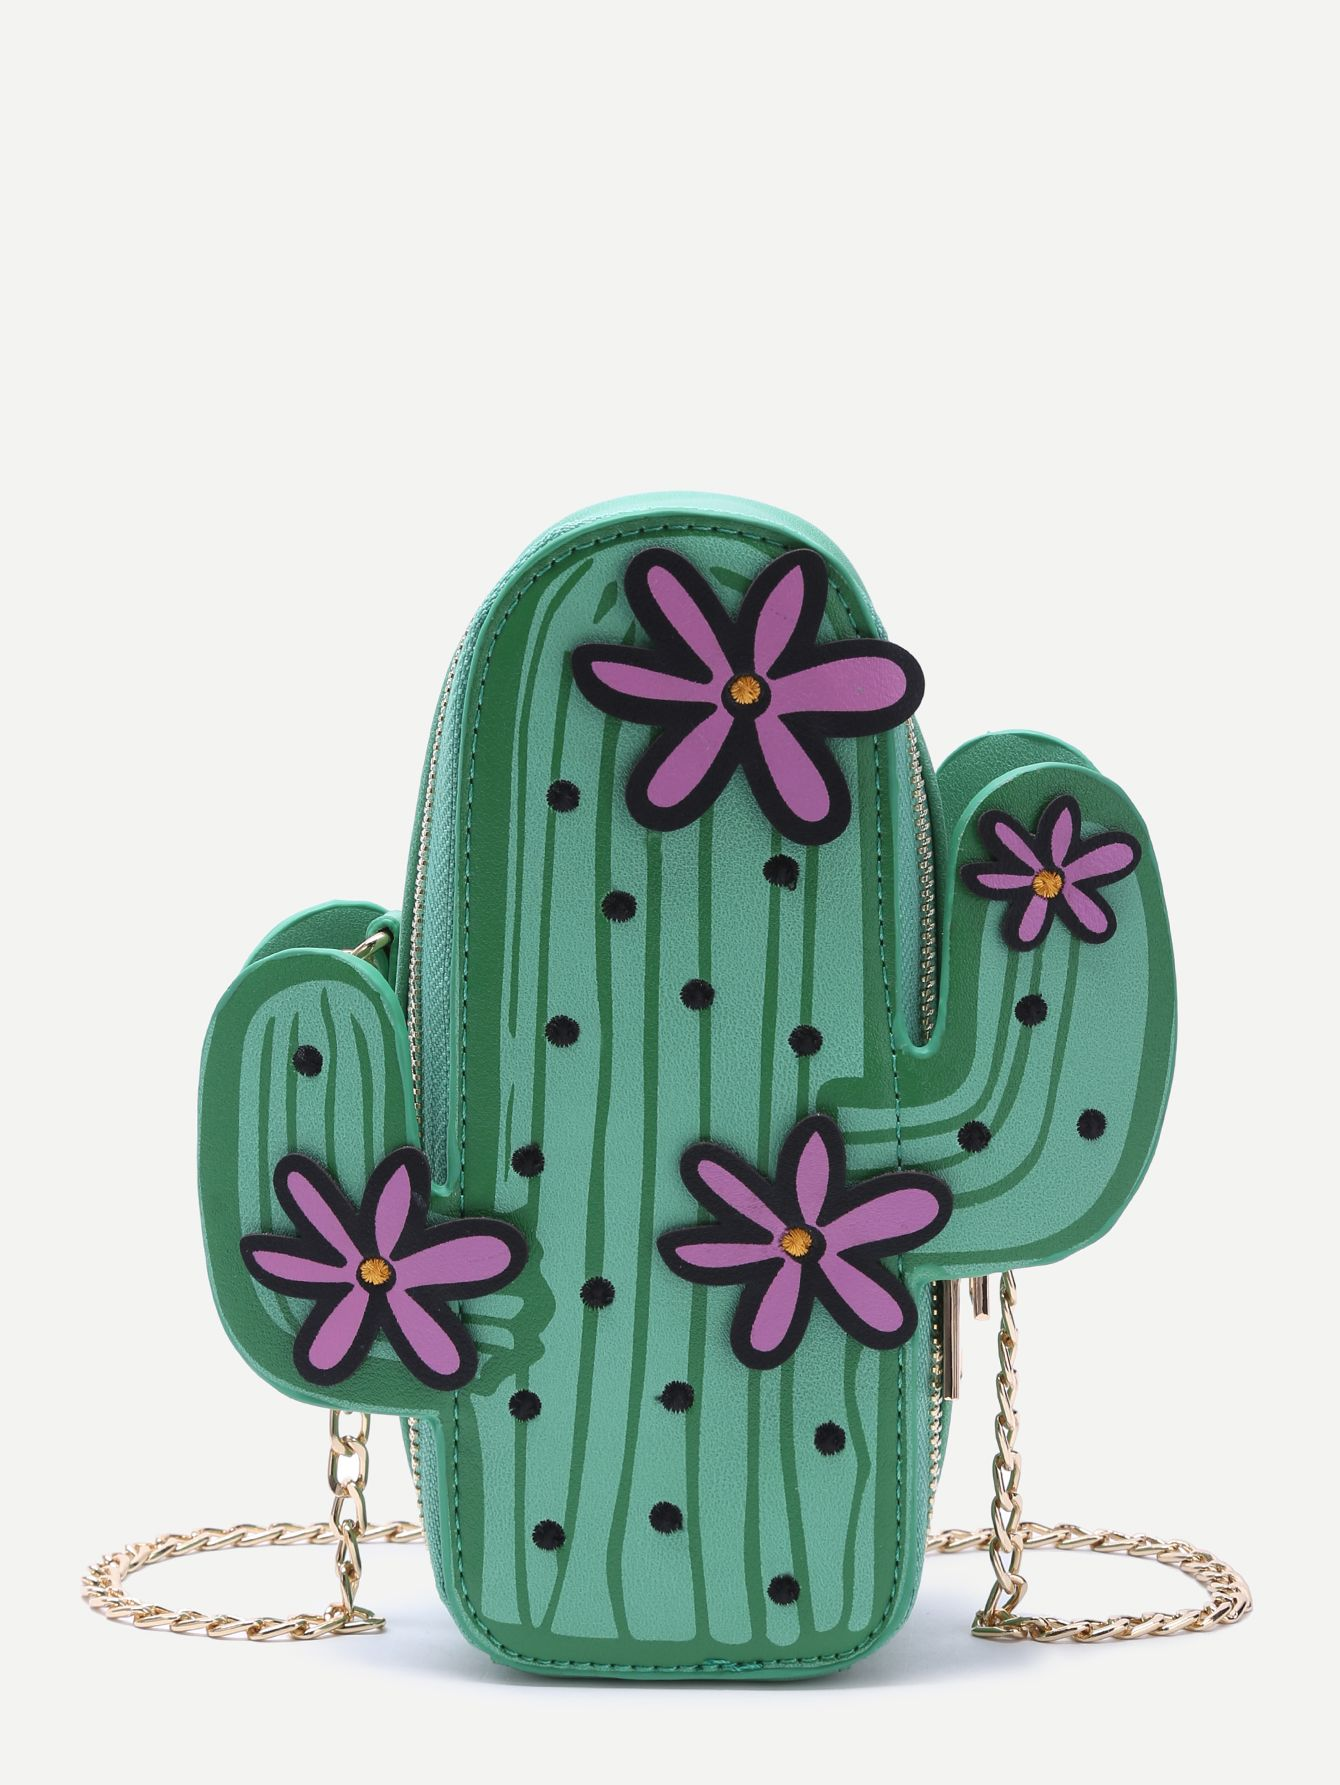 VIDA Statement Clutch - PURPLE PRICKLY CACTI by VIDA z14lu